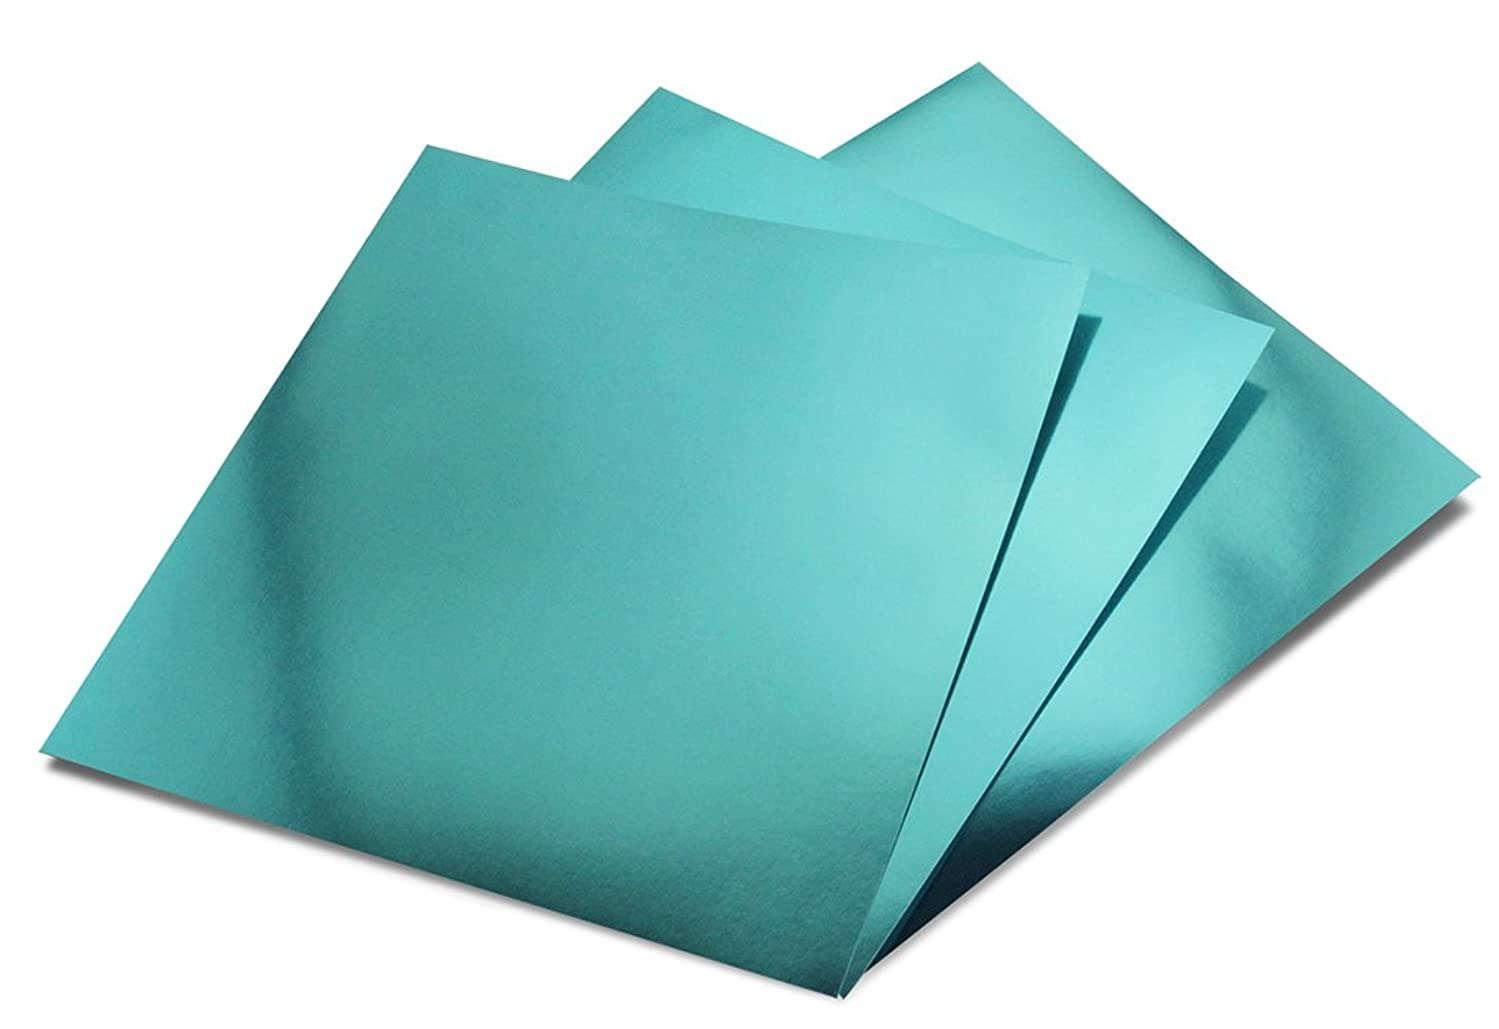 Hygloss Products Metallic Foil Board Sheets - 12 x 12 Inches – Light Blue, 10 Pack